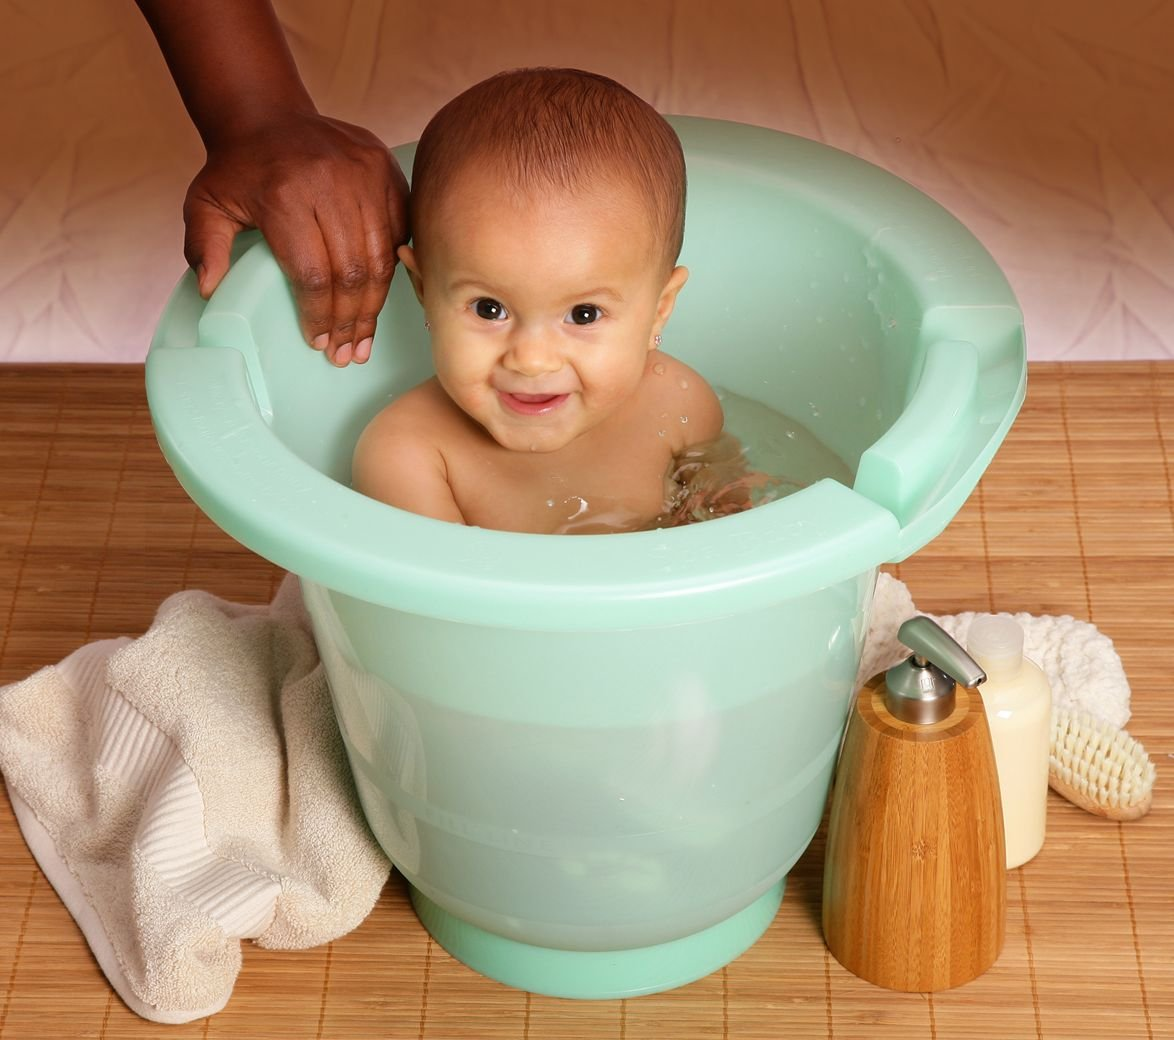 Outstanding Baby Bathing Gallery - Custom Bathtubs - kazenomise.net